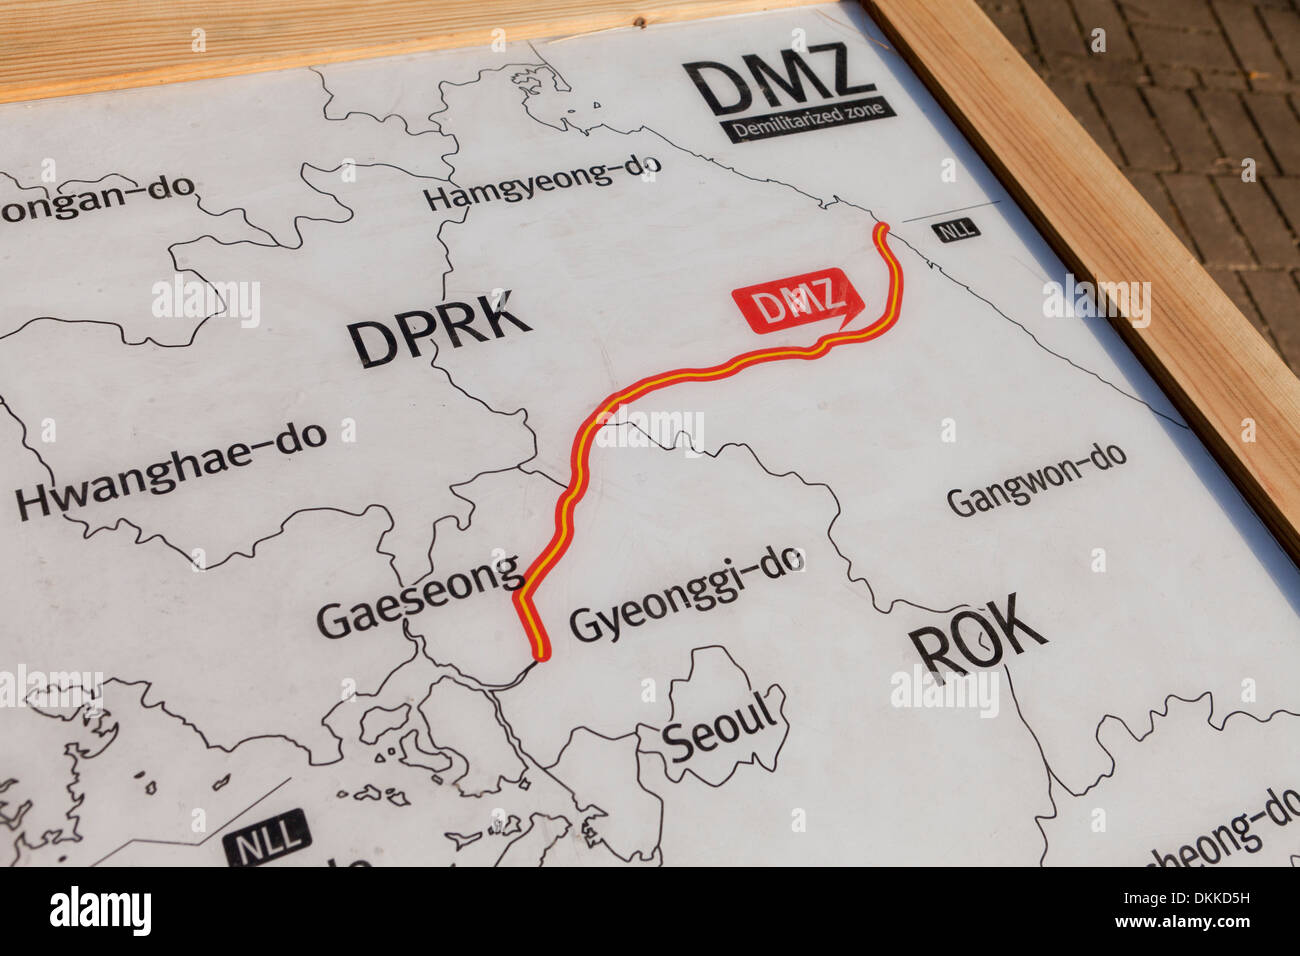 Korean DMZ map Stock Photo: 63737005 - Alamy on aleutian chain map, pankisi gorge map, bridge of no return, ohio renaissance festival map, camp greaves map, south korea map, aftermath of the korean war, korean border, camp bonifas, buffer zone, division of korea, korean demilitarized zone, north china map, neutral nations supervisory commission, baltimore metro area map, korean wall, canadian maritimes map, saint lawrence seaway map, northern limit line, korean reunification, military demarcation line, mona passage map, camp pelham korea map, north korea map, korean peninsula, joint security area, south polar map, axe murder incident, pine ridge indian reservation map, vietnam border map, third tunnel of aggression, army bases in korea map, kij�ng-dong,